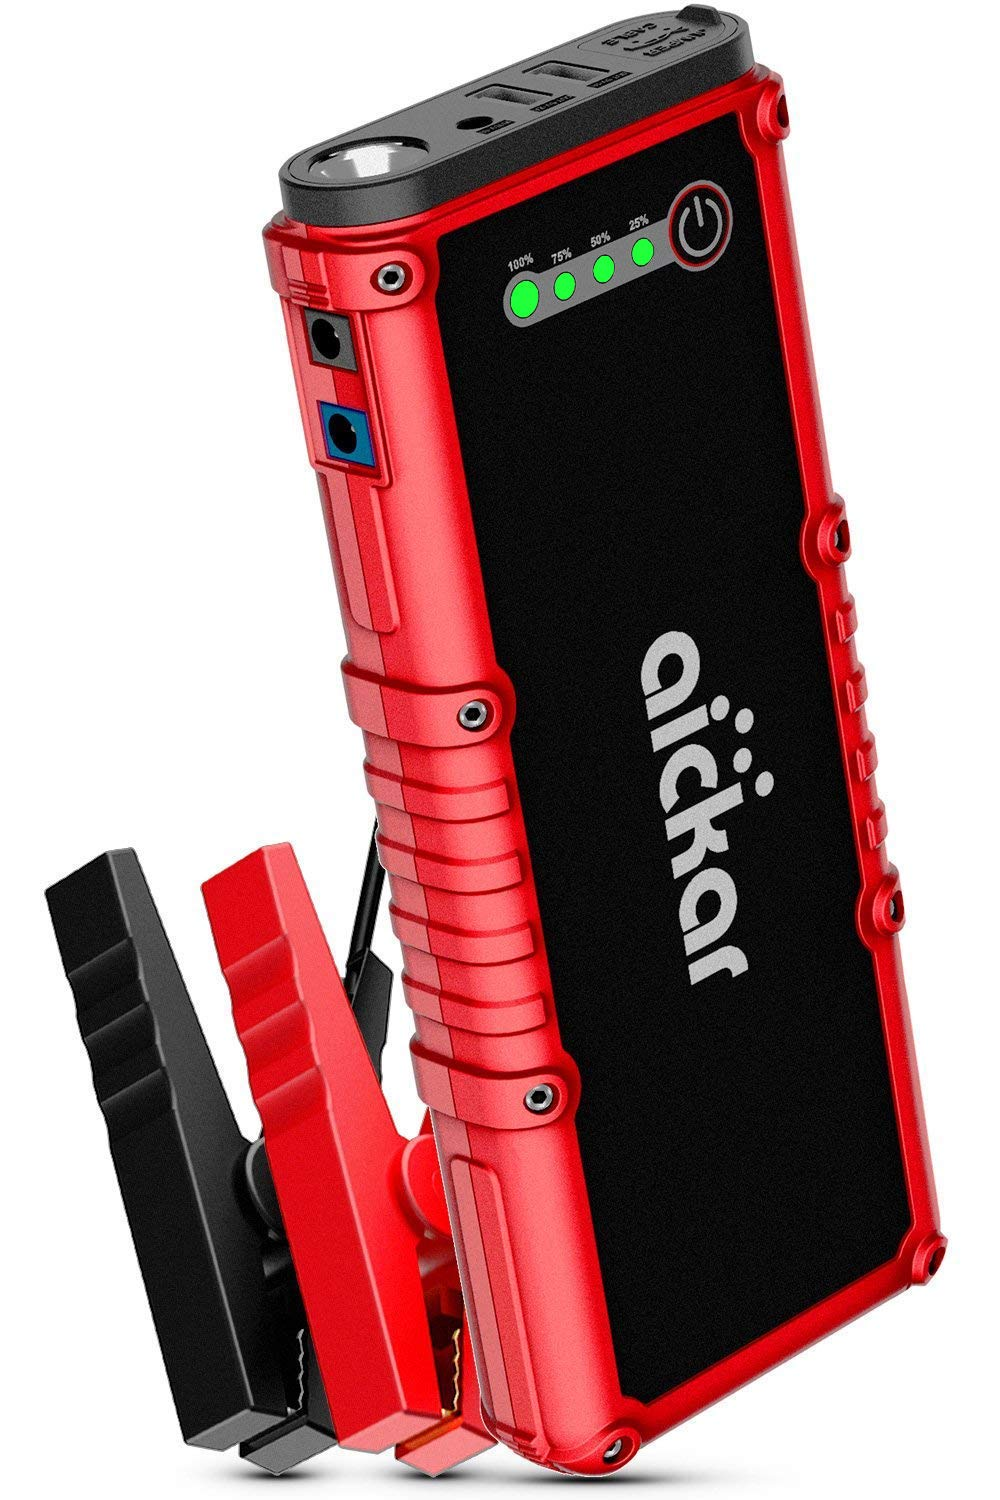 Built-in LED Flashlight with Car Jumper Cables Heavy Duty Up to 8.0L Gas /& 6.0L Diesel Engine 1200A Peak 19800mAh 12V Auto Battery Booster aickar Car Jump Starter Portable Battery Power Bank